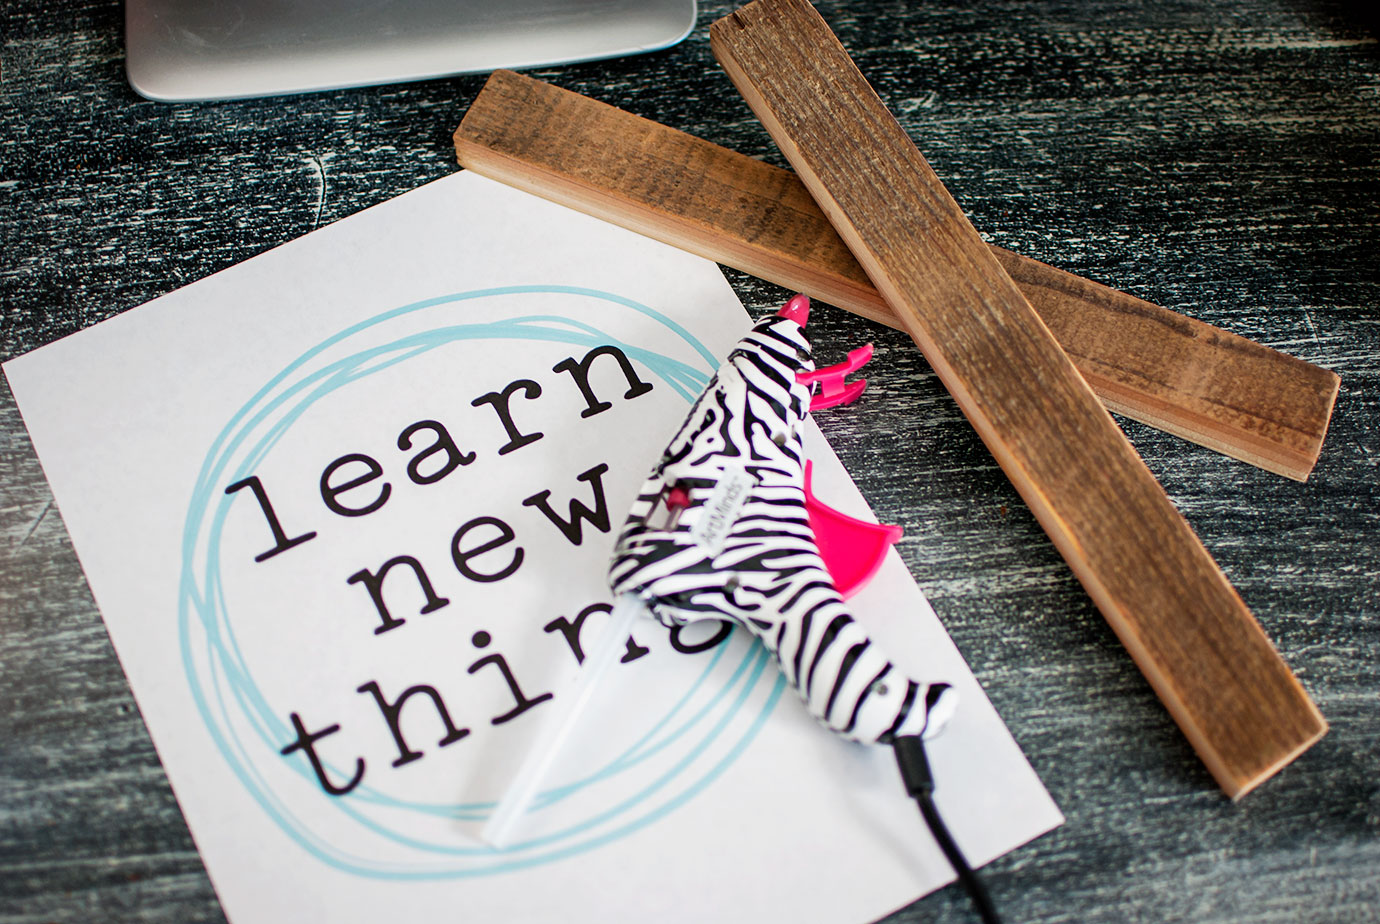 Learn New Things Printable and DIY Supplies, Hot Glue Gun and Wood For a Frame